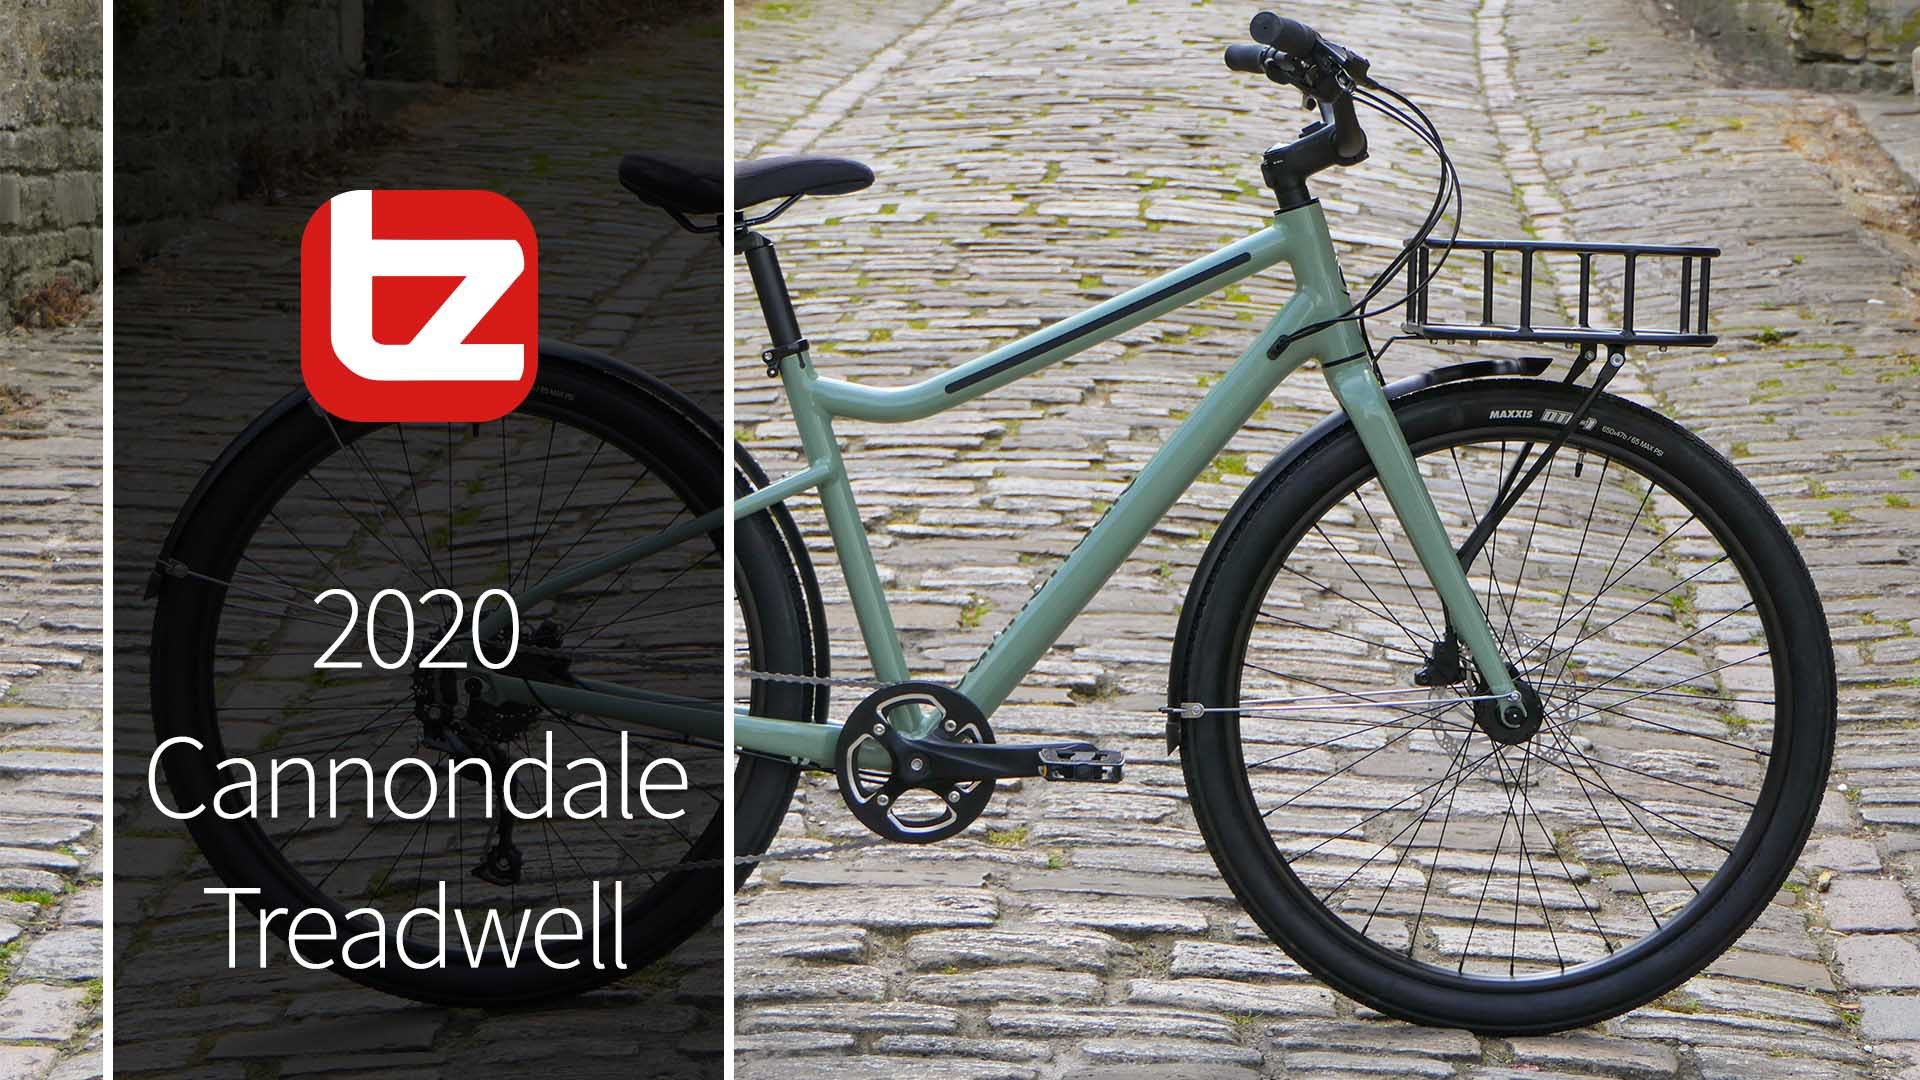 2020 Cannondale Treadwell